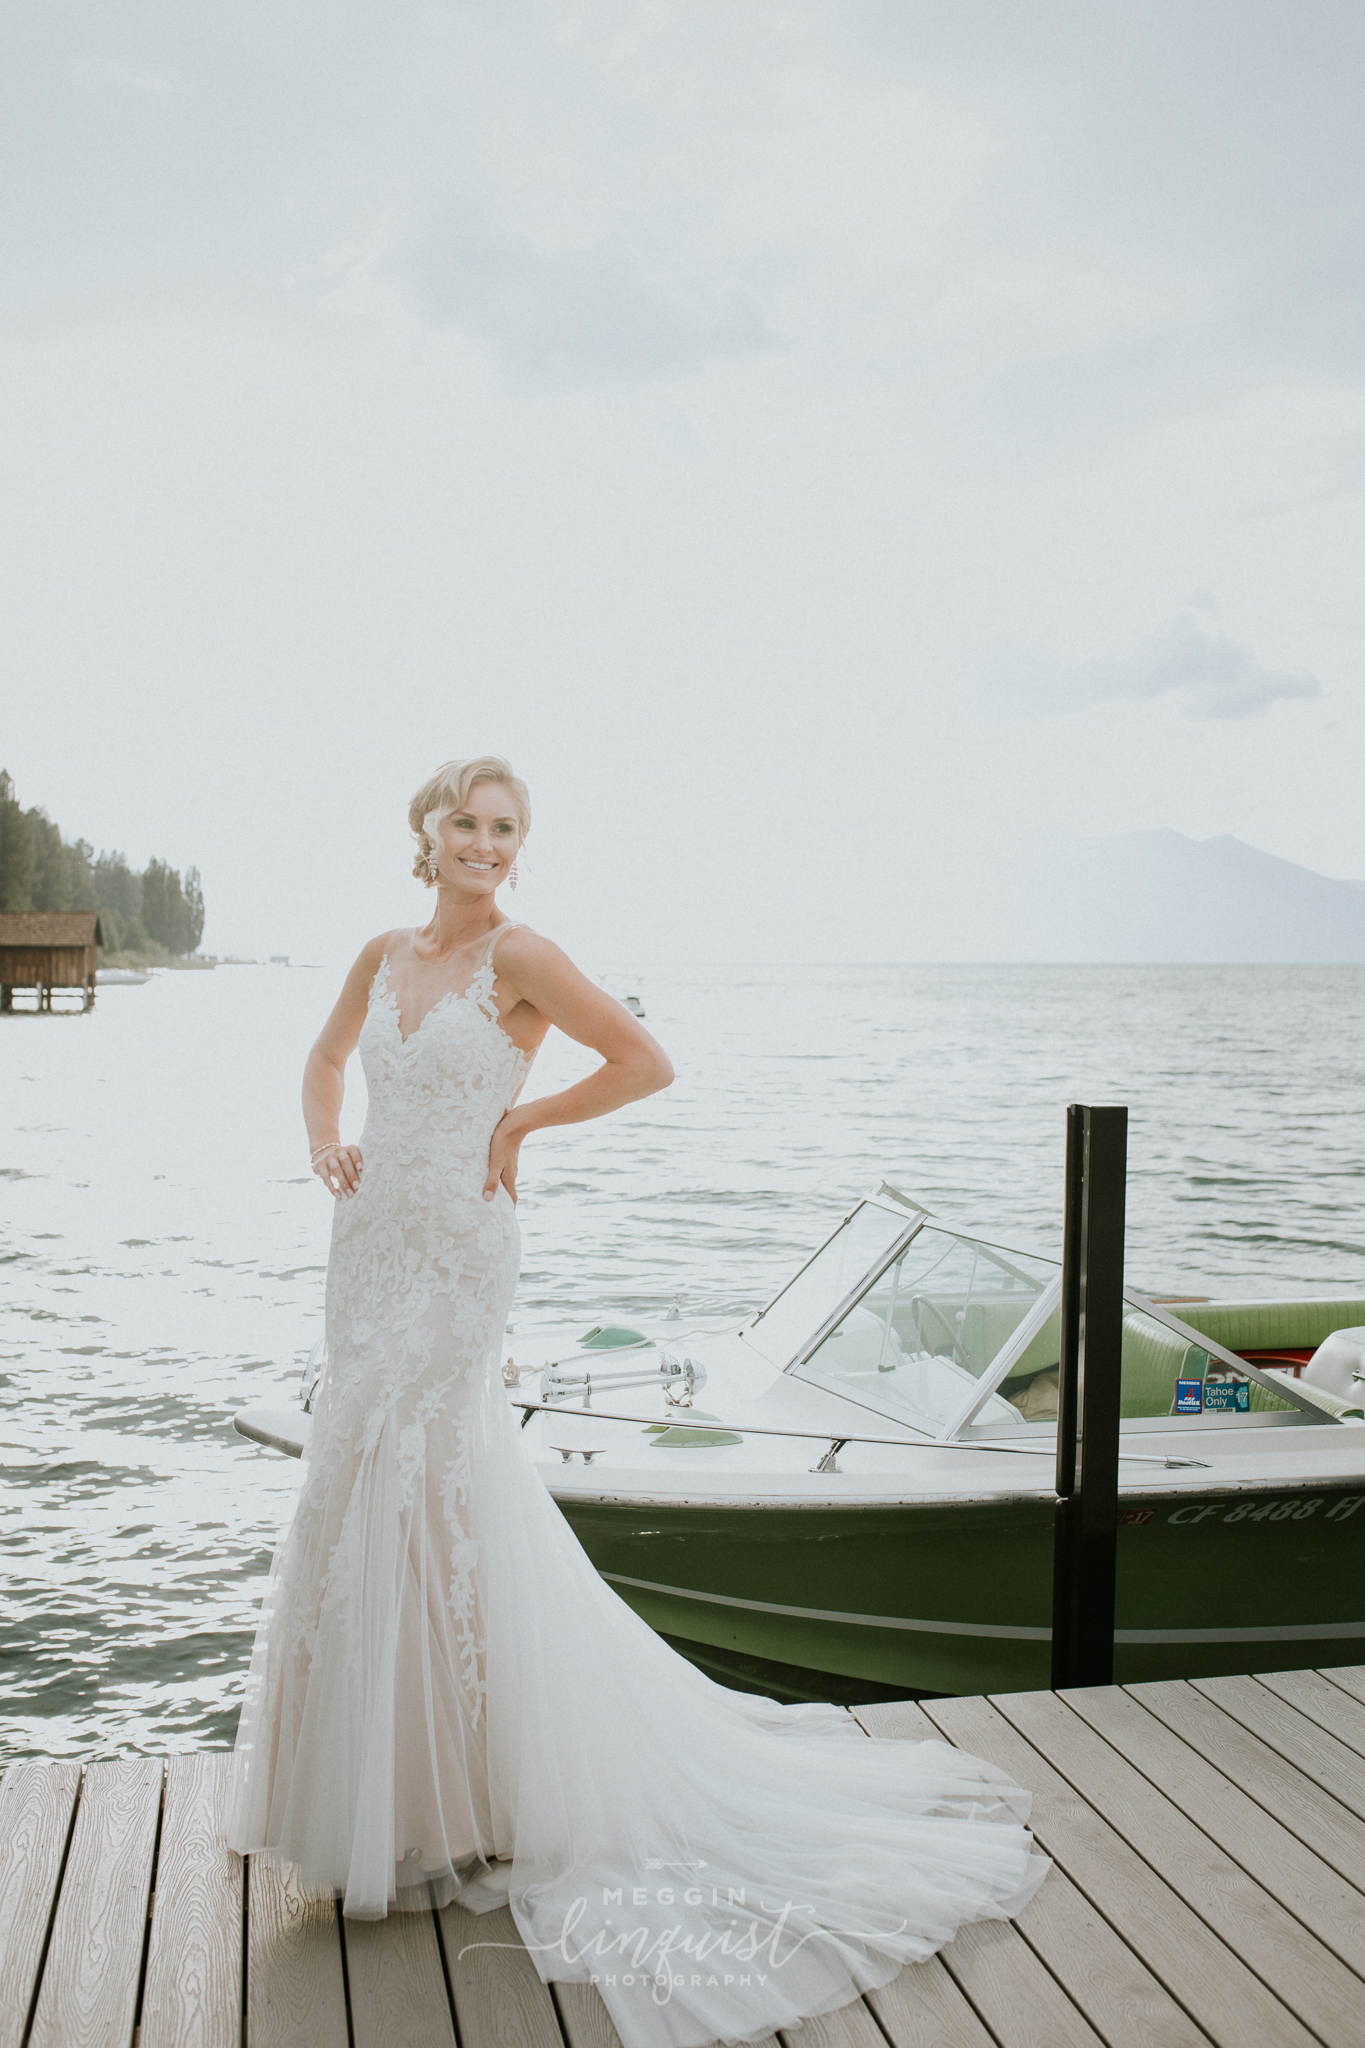 regan-beach-wedding-reno-lake-tahoe-wedding-photographer-57.jpg